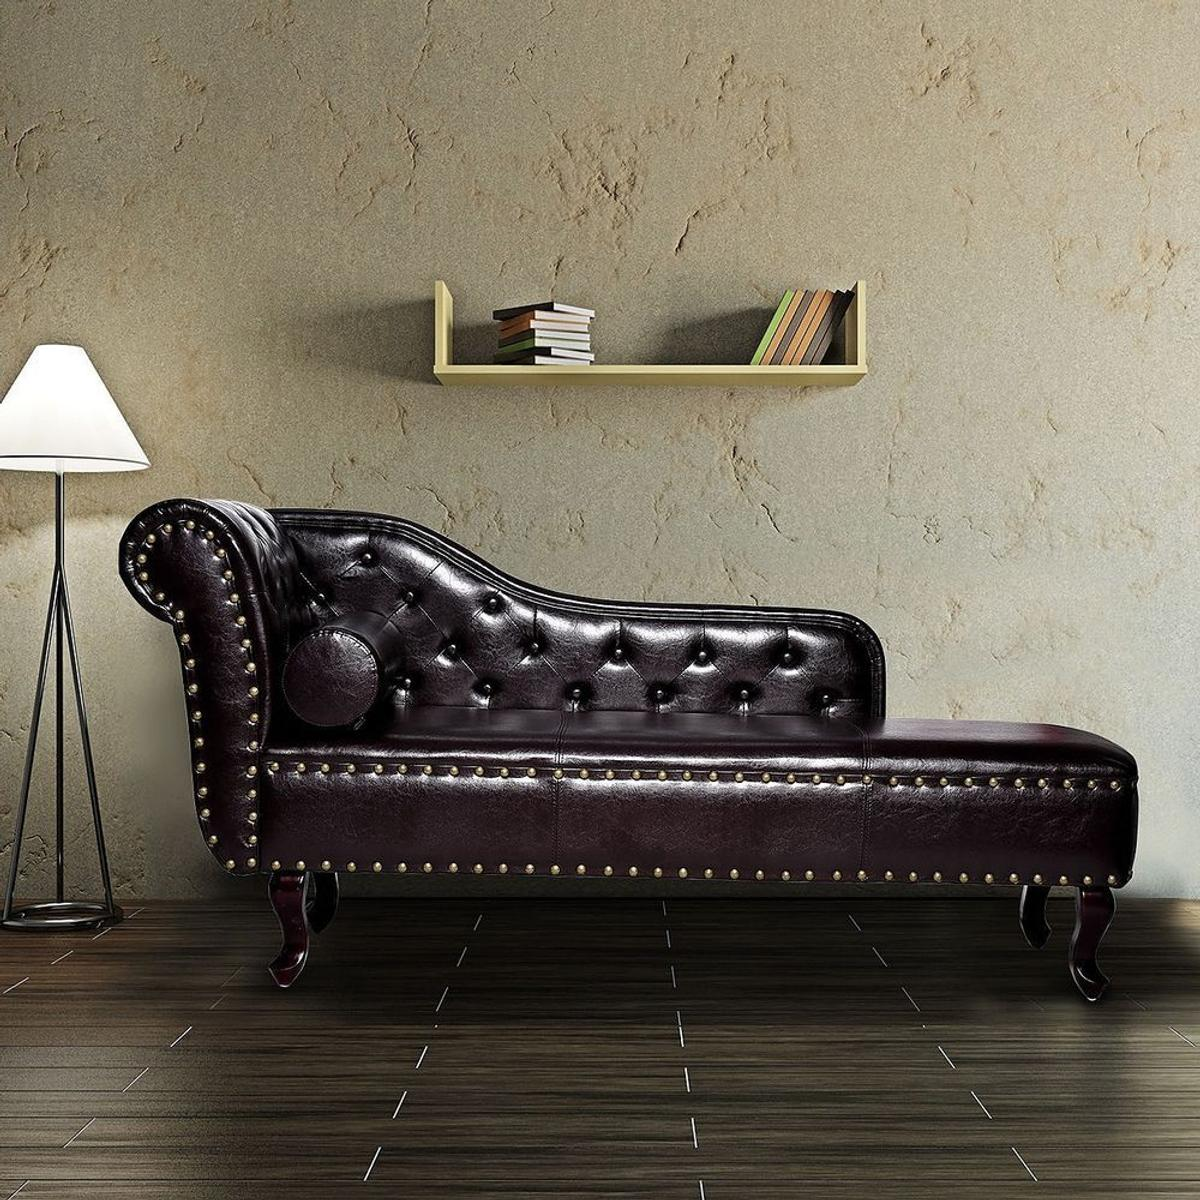 Stunning Vintage Chaise Longue For Sale In Ng5 6ae Nottingham For